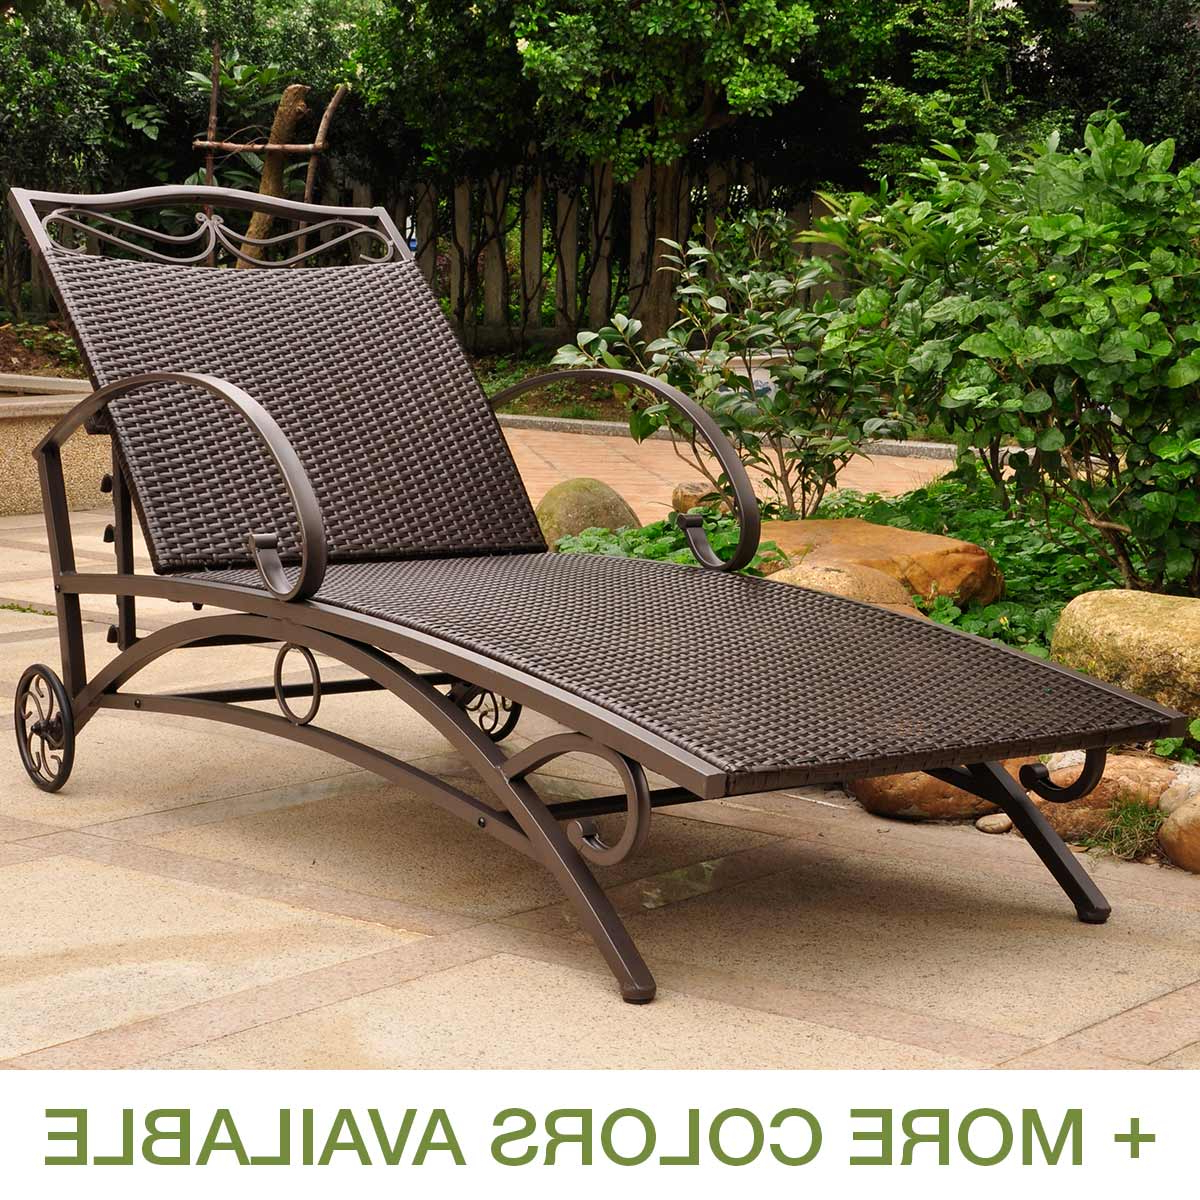 Popular International Caravan Valencia Resin Wicker Multi Position Pertaining To Multi Position Chaise Lounges (View 18 of 25)